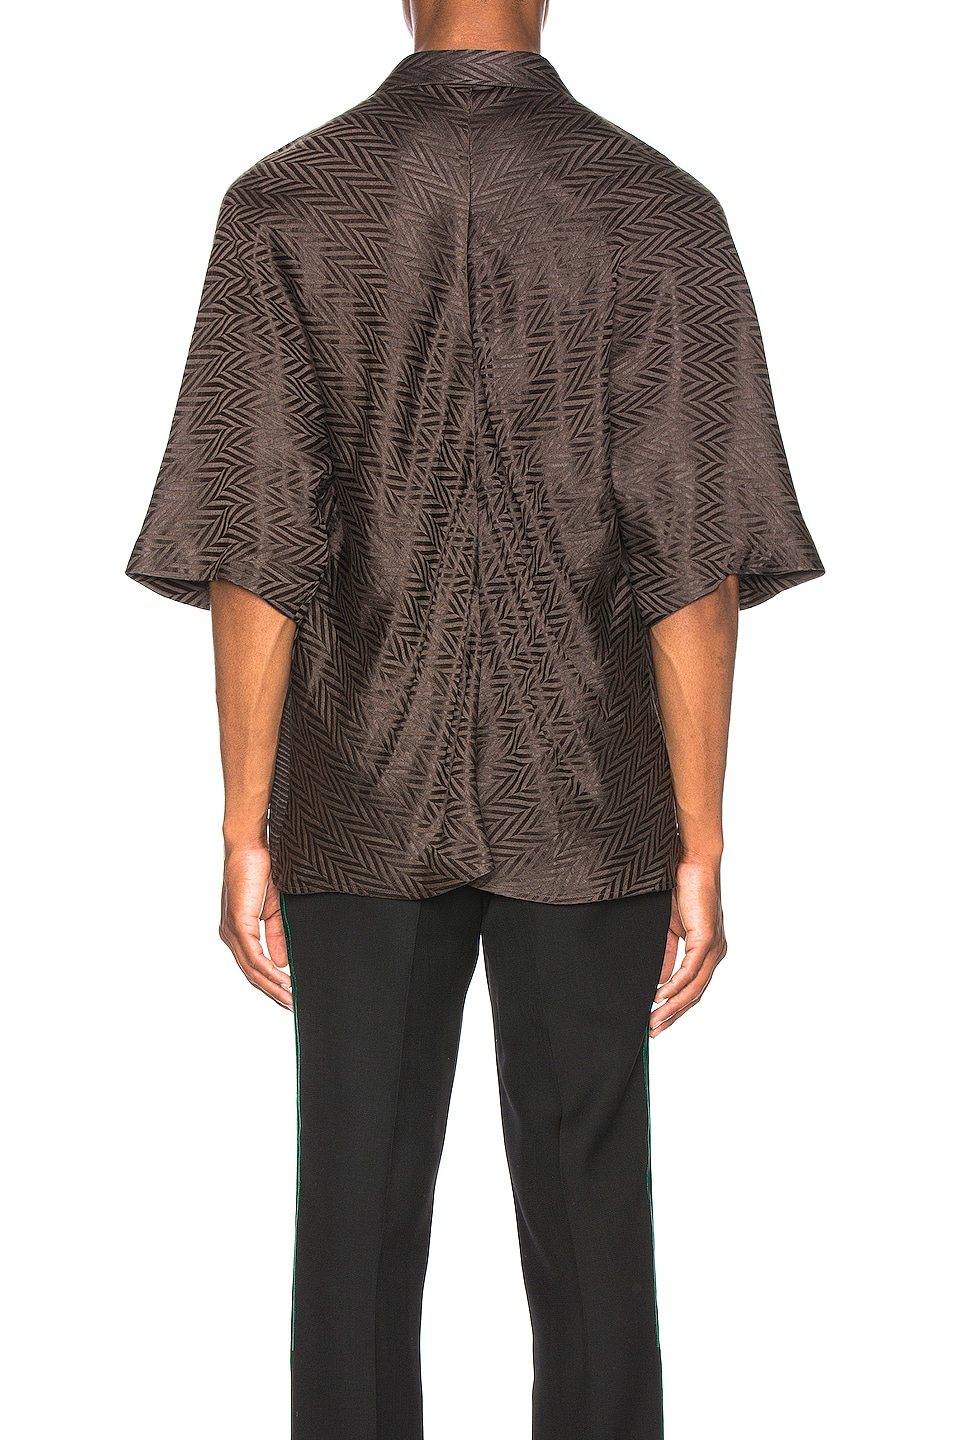 Image 3 of Haider Ackermann Kimono Shirt in Athenaes Brown